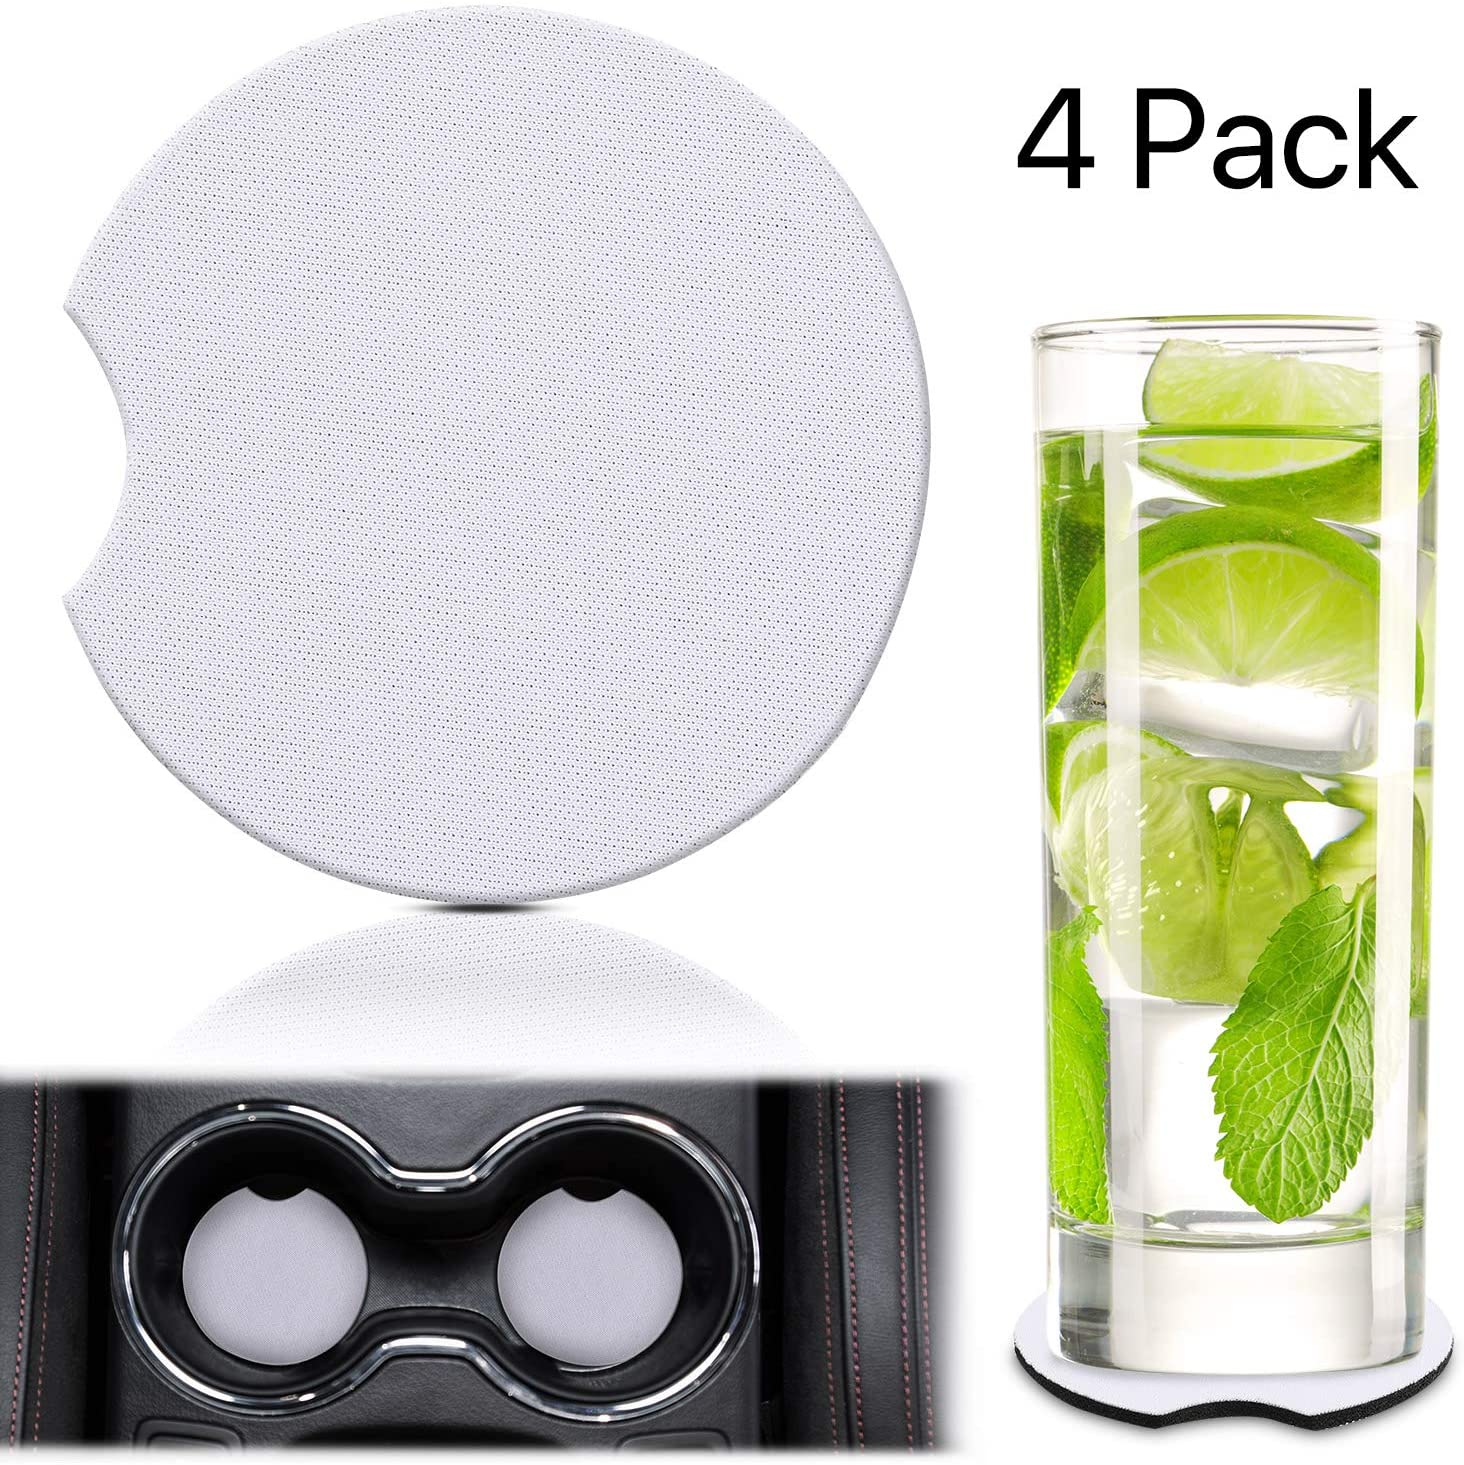 4 Pieces Sublimation Blanks Coaster DIY Car Cup Holder Coaster with Absorbent Neoprene and Finger Notch, Blank Drink Cup Mat Pad for Your Own Crafts to Keep from Sweat Stain Spill(White Coaster 2.56